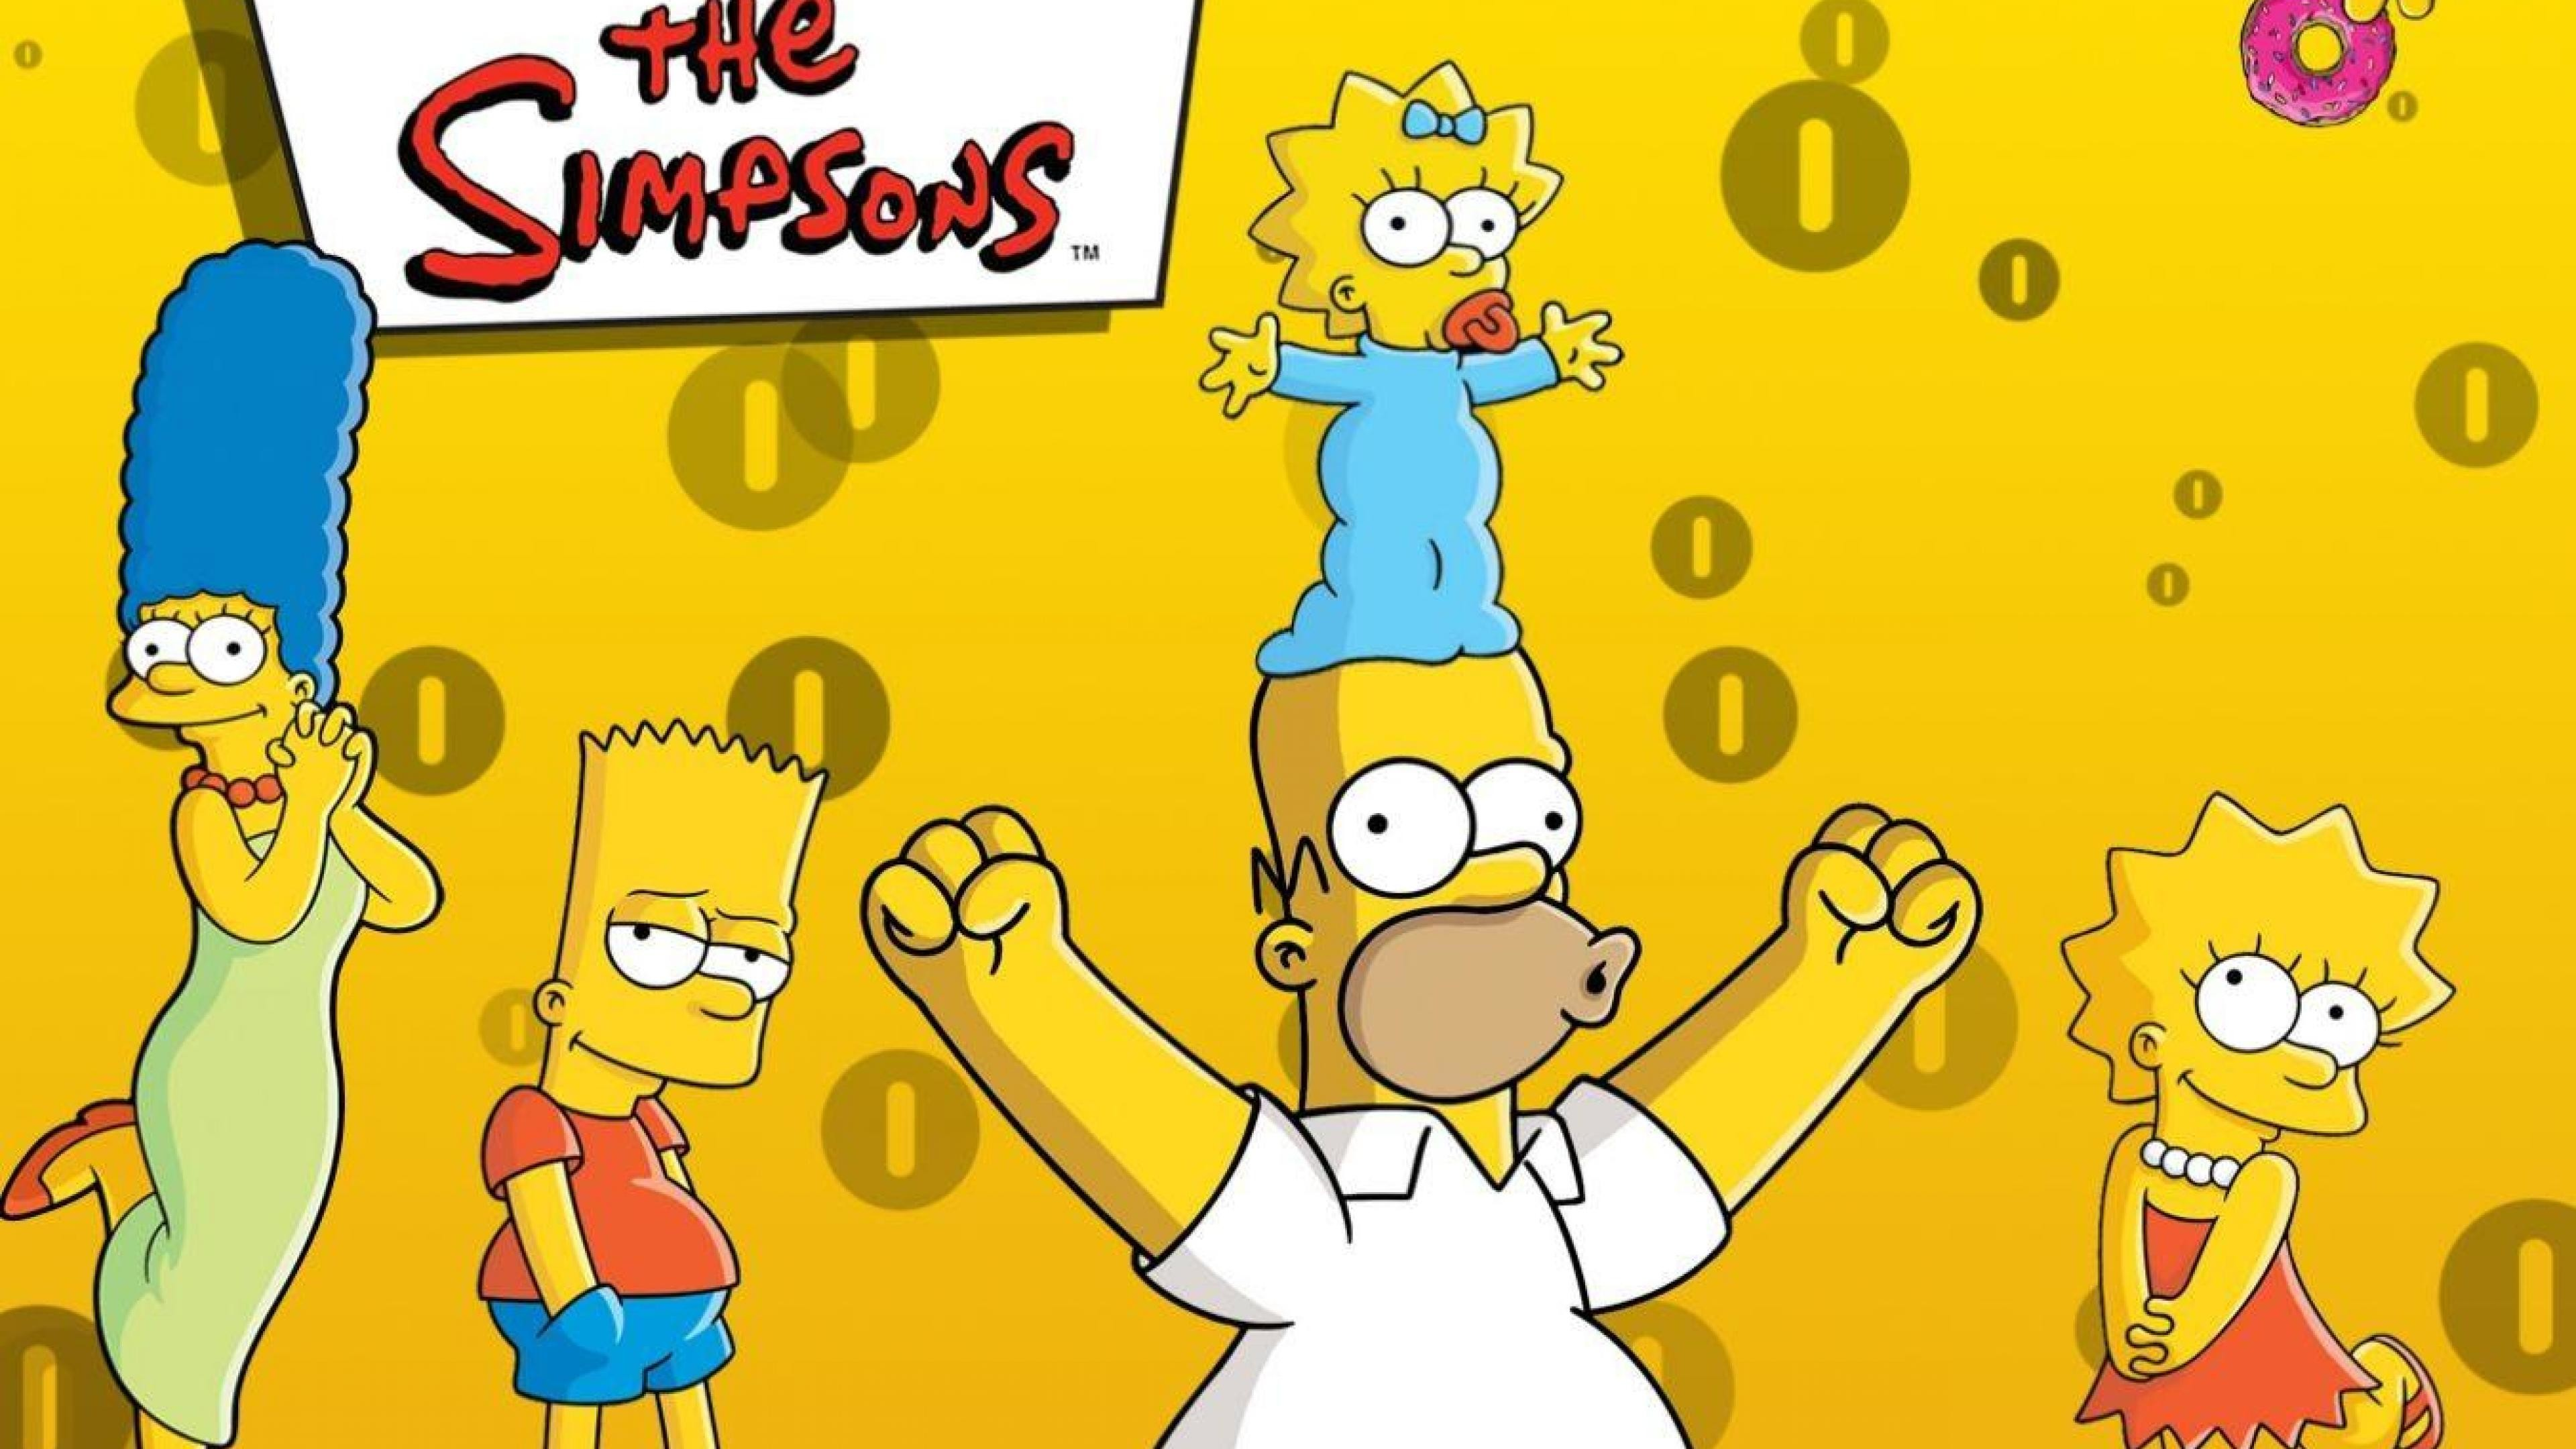 Cute Wallpapers With Nice Quotes The Simpsons Wallpaper For Desktop 68 Images